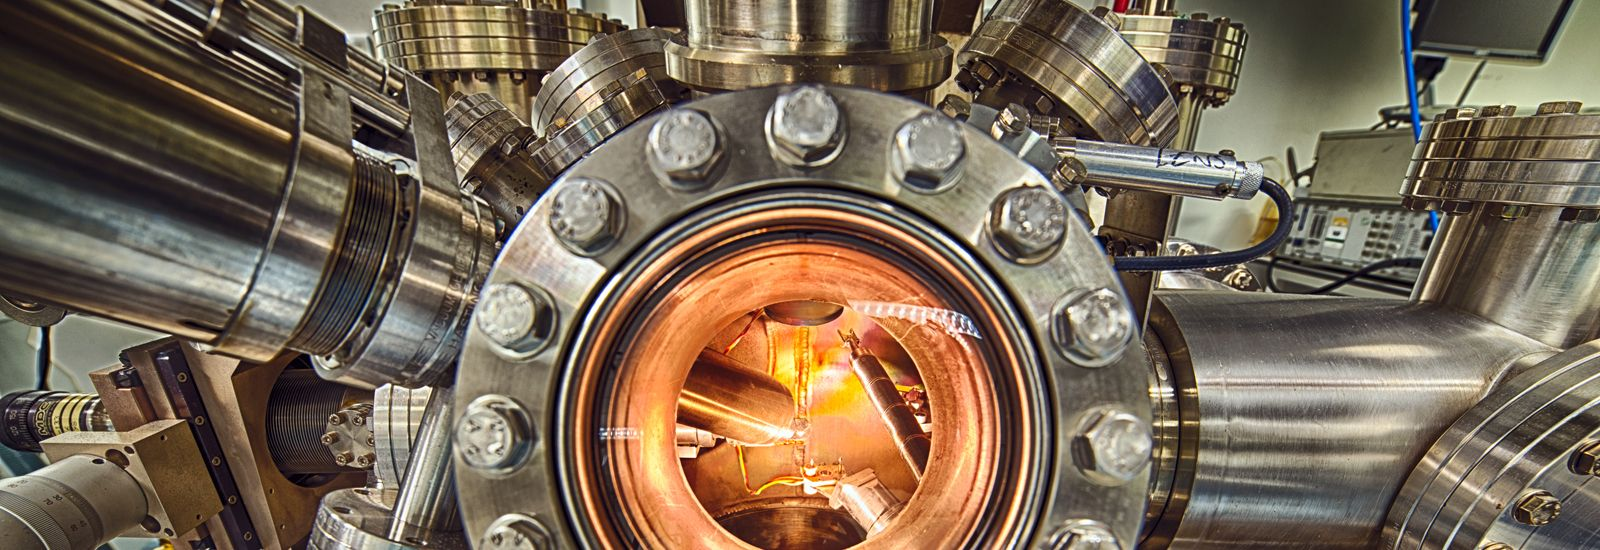 Close up of large metal machinery in a lab